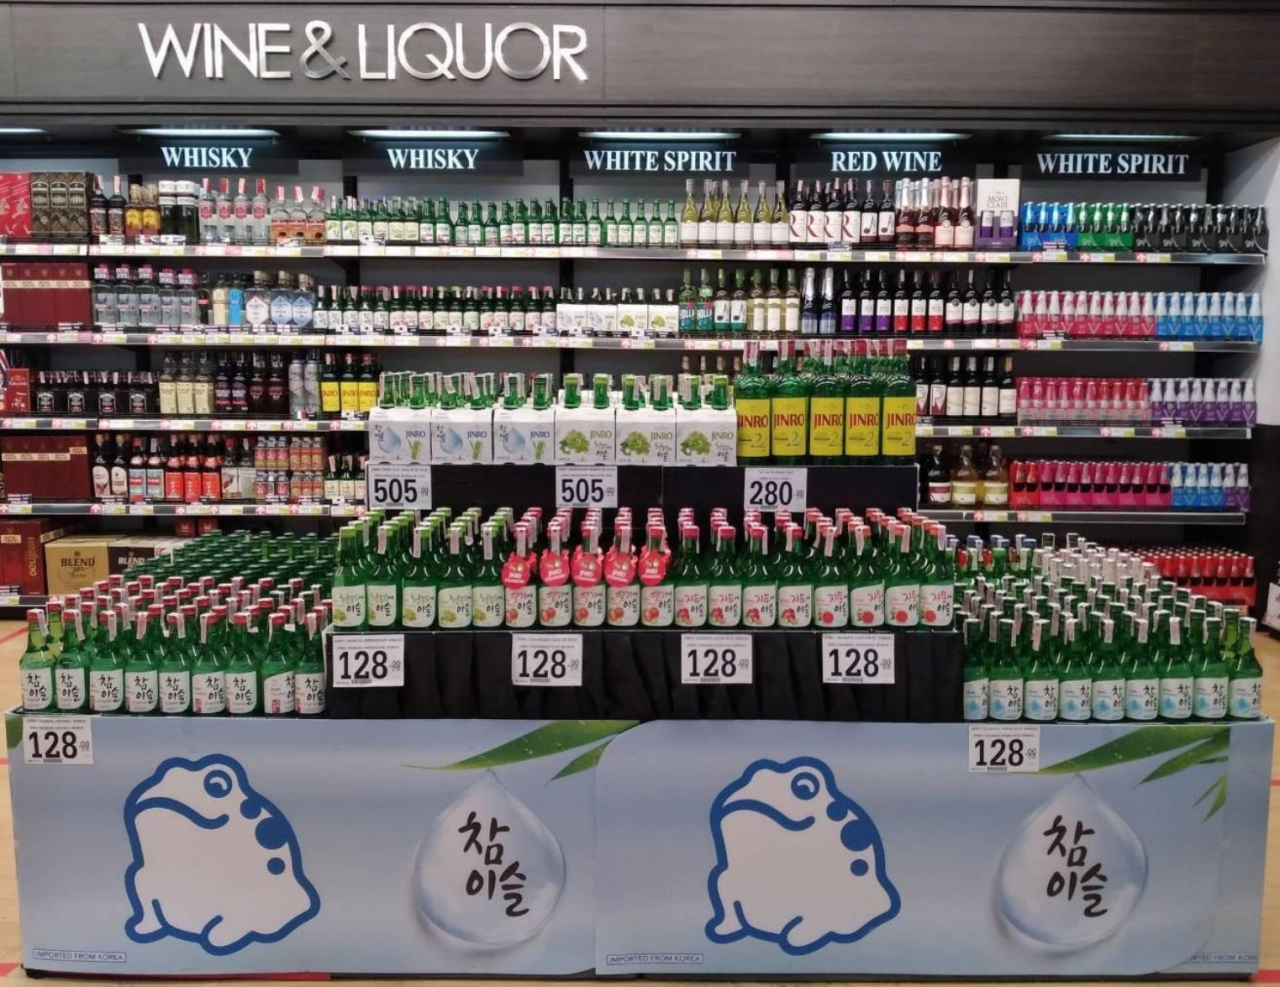 Soju products from Hite Jinro are displayed on the shelves of a Makro discount store in Thailand. (Hite Jinro)